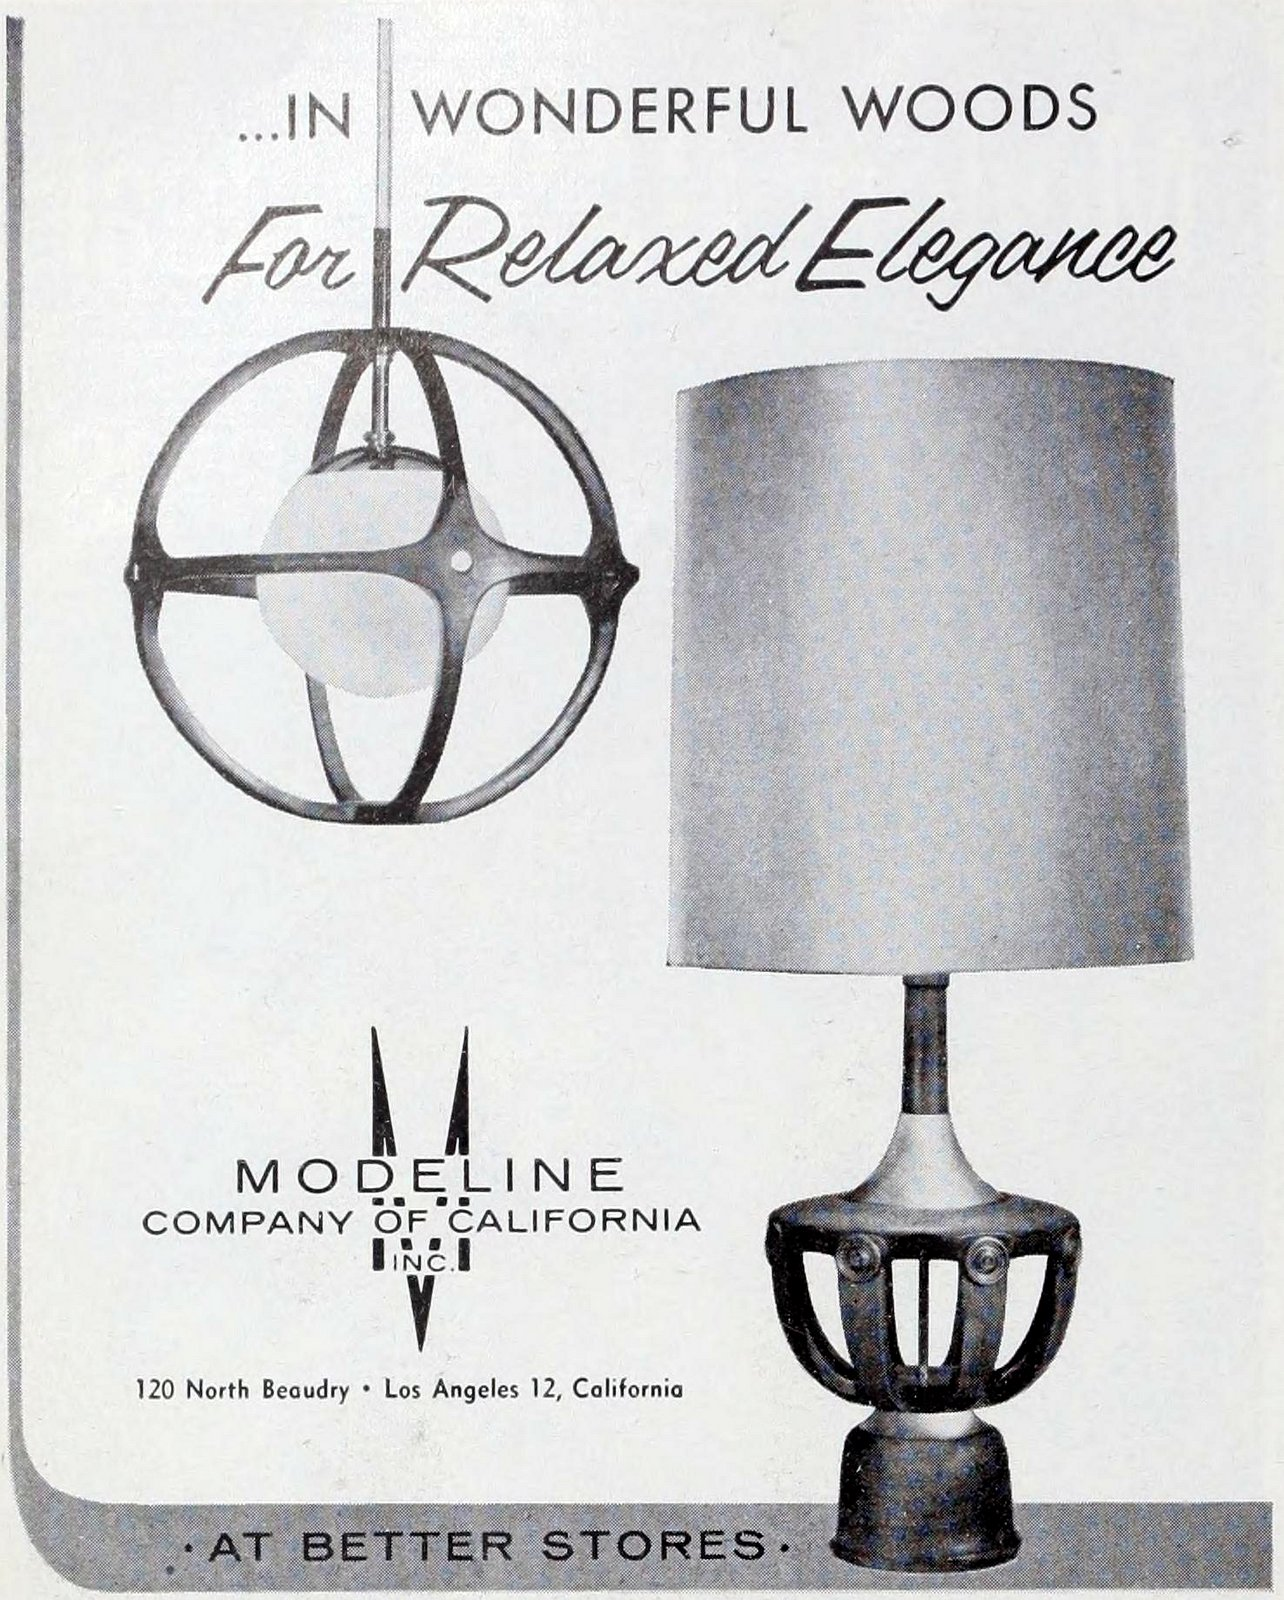 Moeline mod lamps from the sixties (1962)